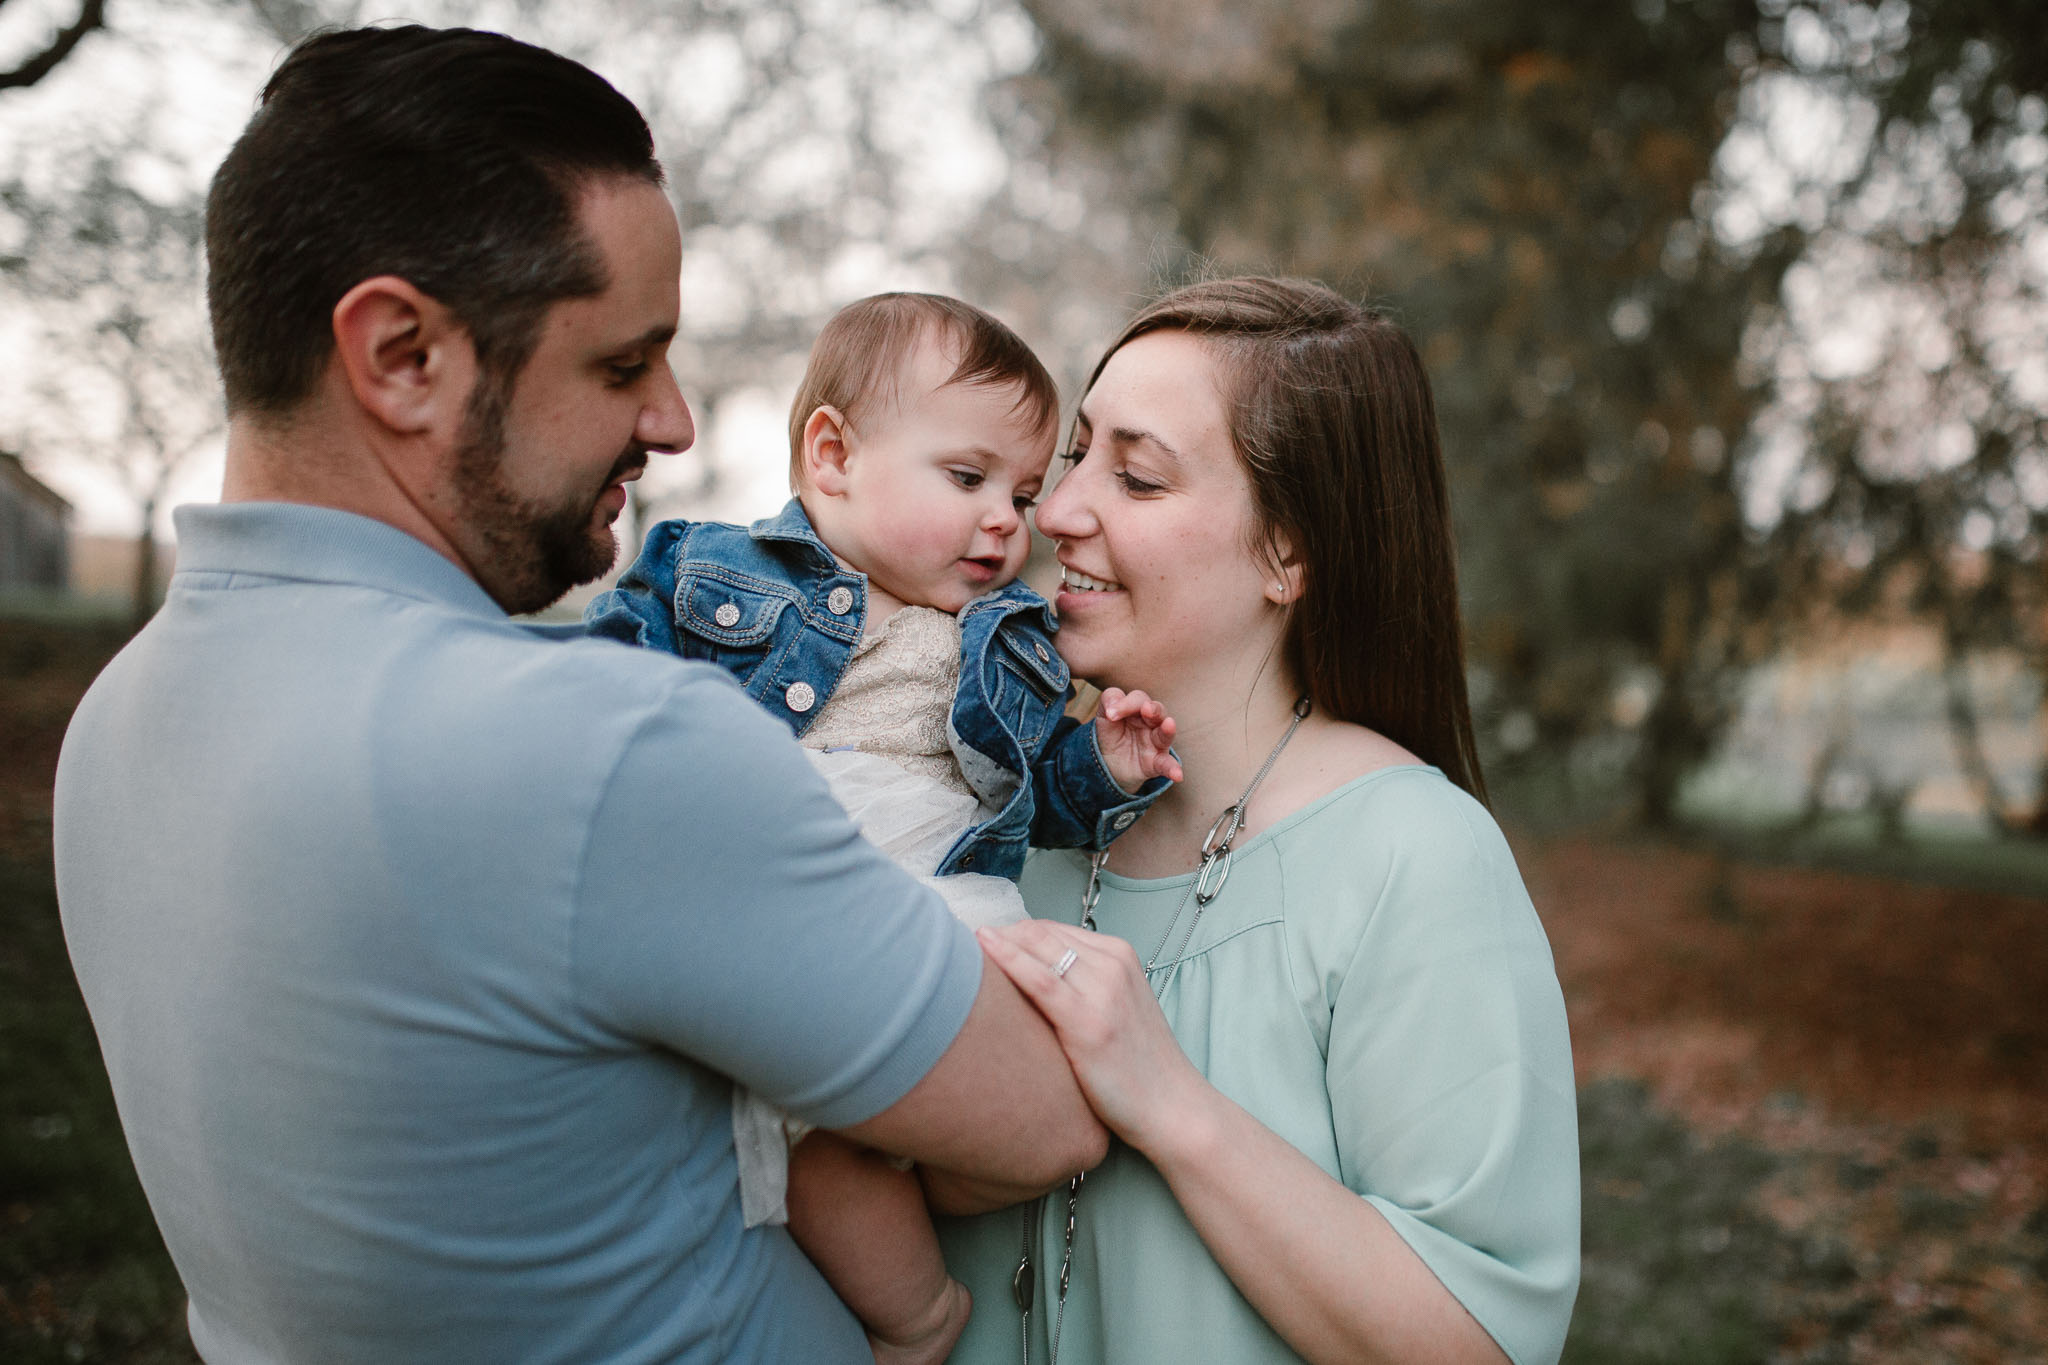 Parents hold and kiss their infant daughter  at Ida Lee Park in Leesburg, VA